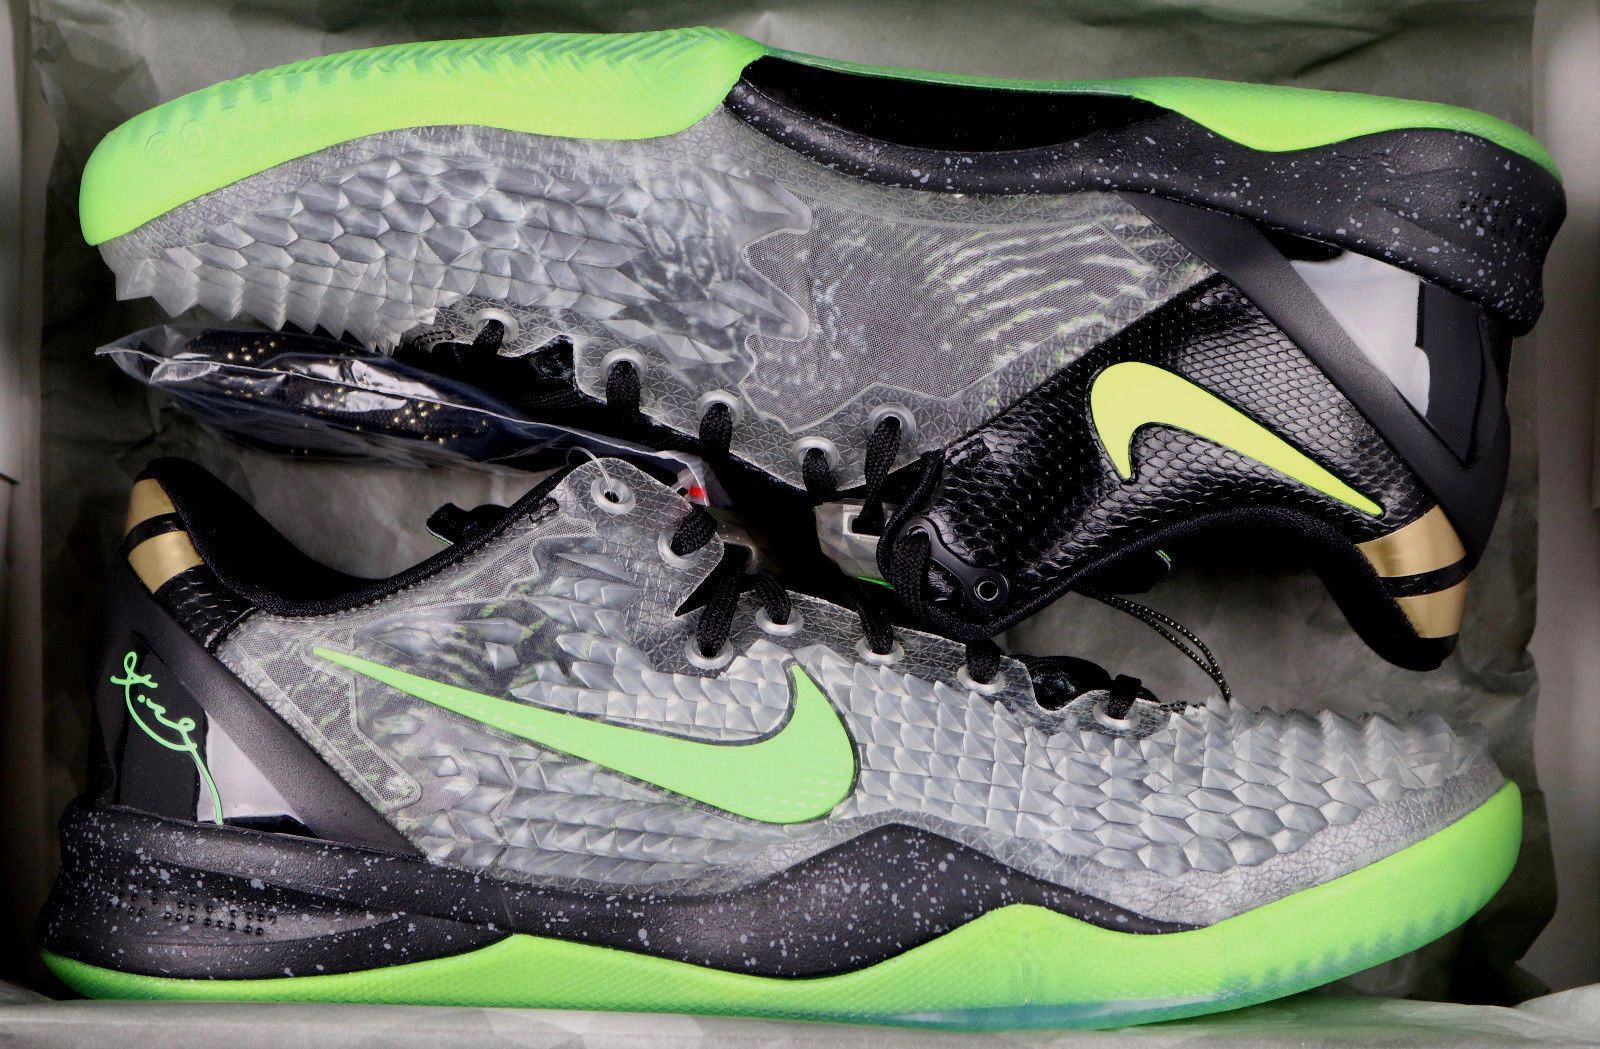 0af95347340a NIKE Kobe 8 System SS sz 14 Christmas and 50 similar items. S l1600